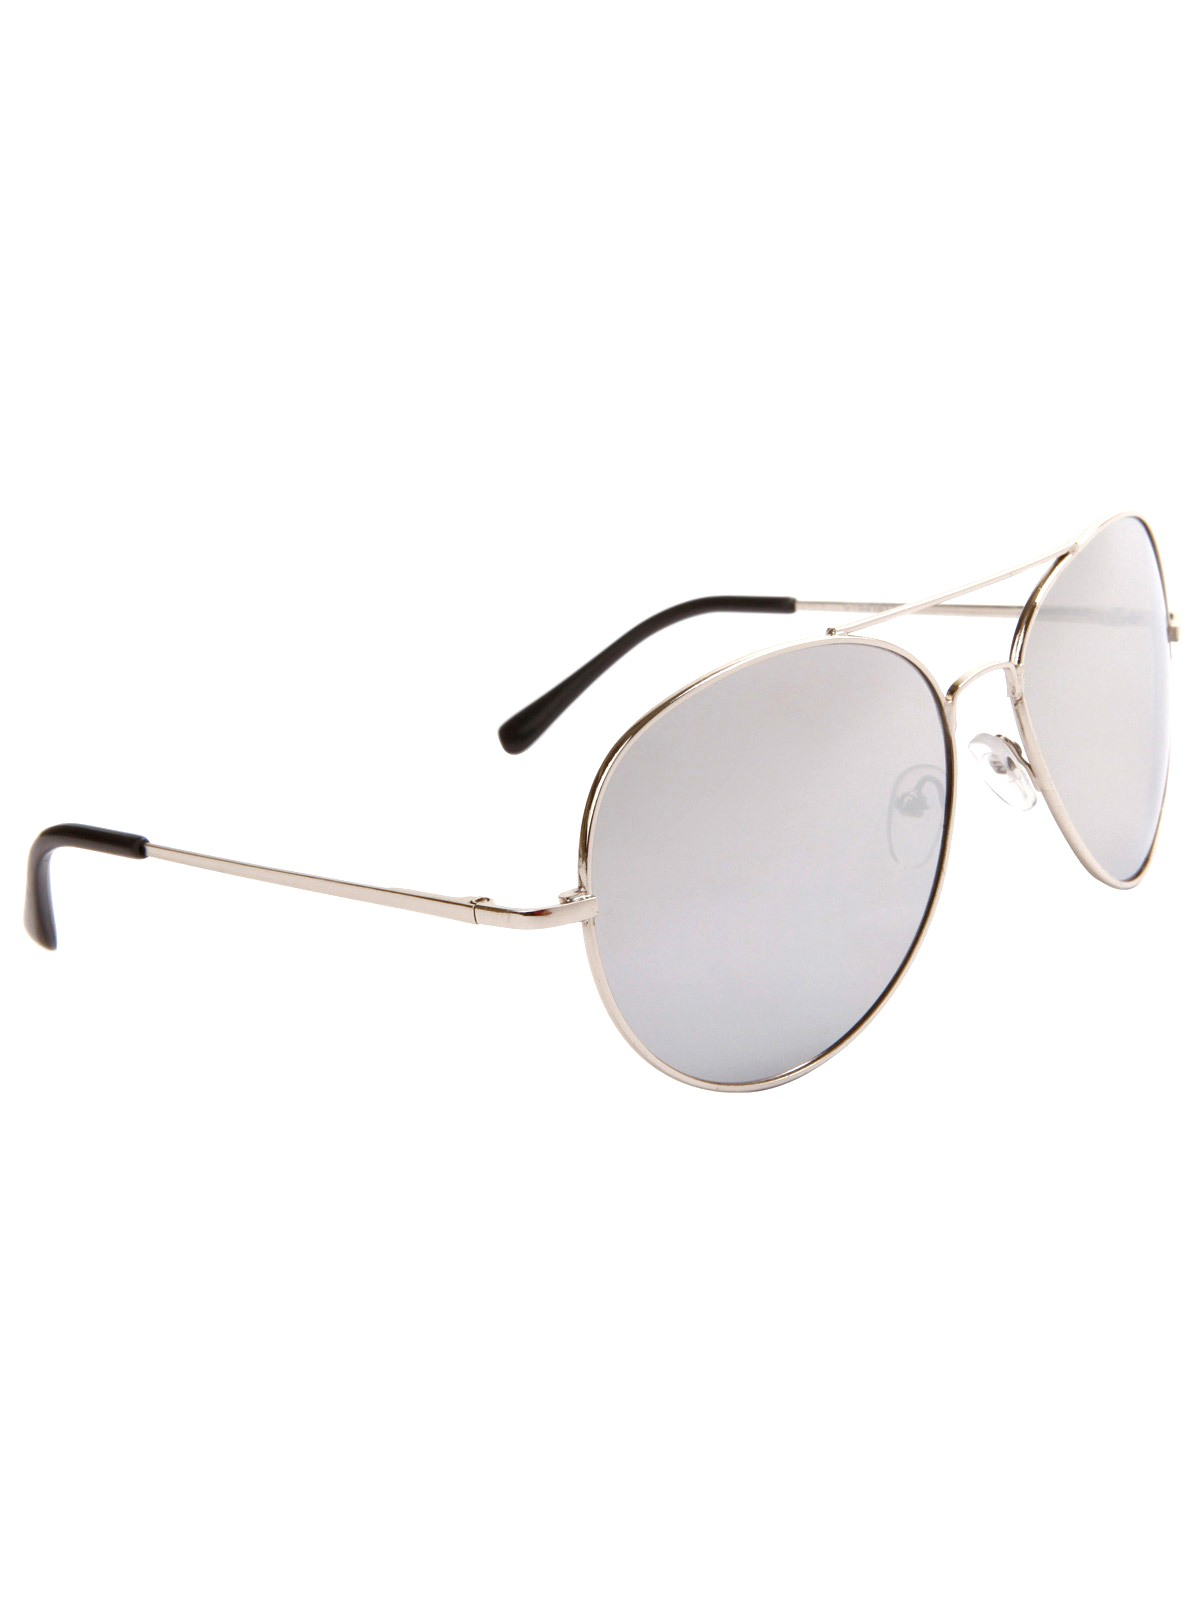 94ba56d4617 70s Glasses (Care Label)  70s style (made recently) -Care Label- Unisex  silver metal rim background aviator sunglasses with mirrored lenses.